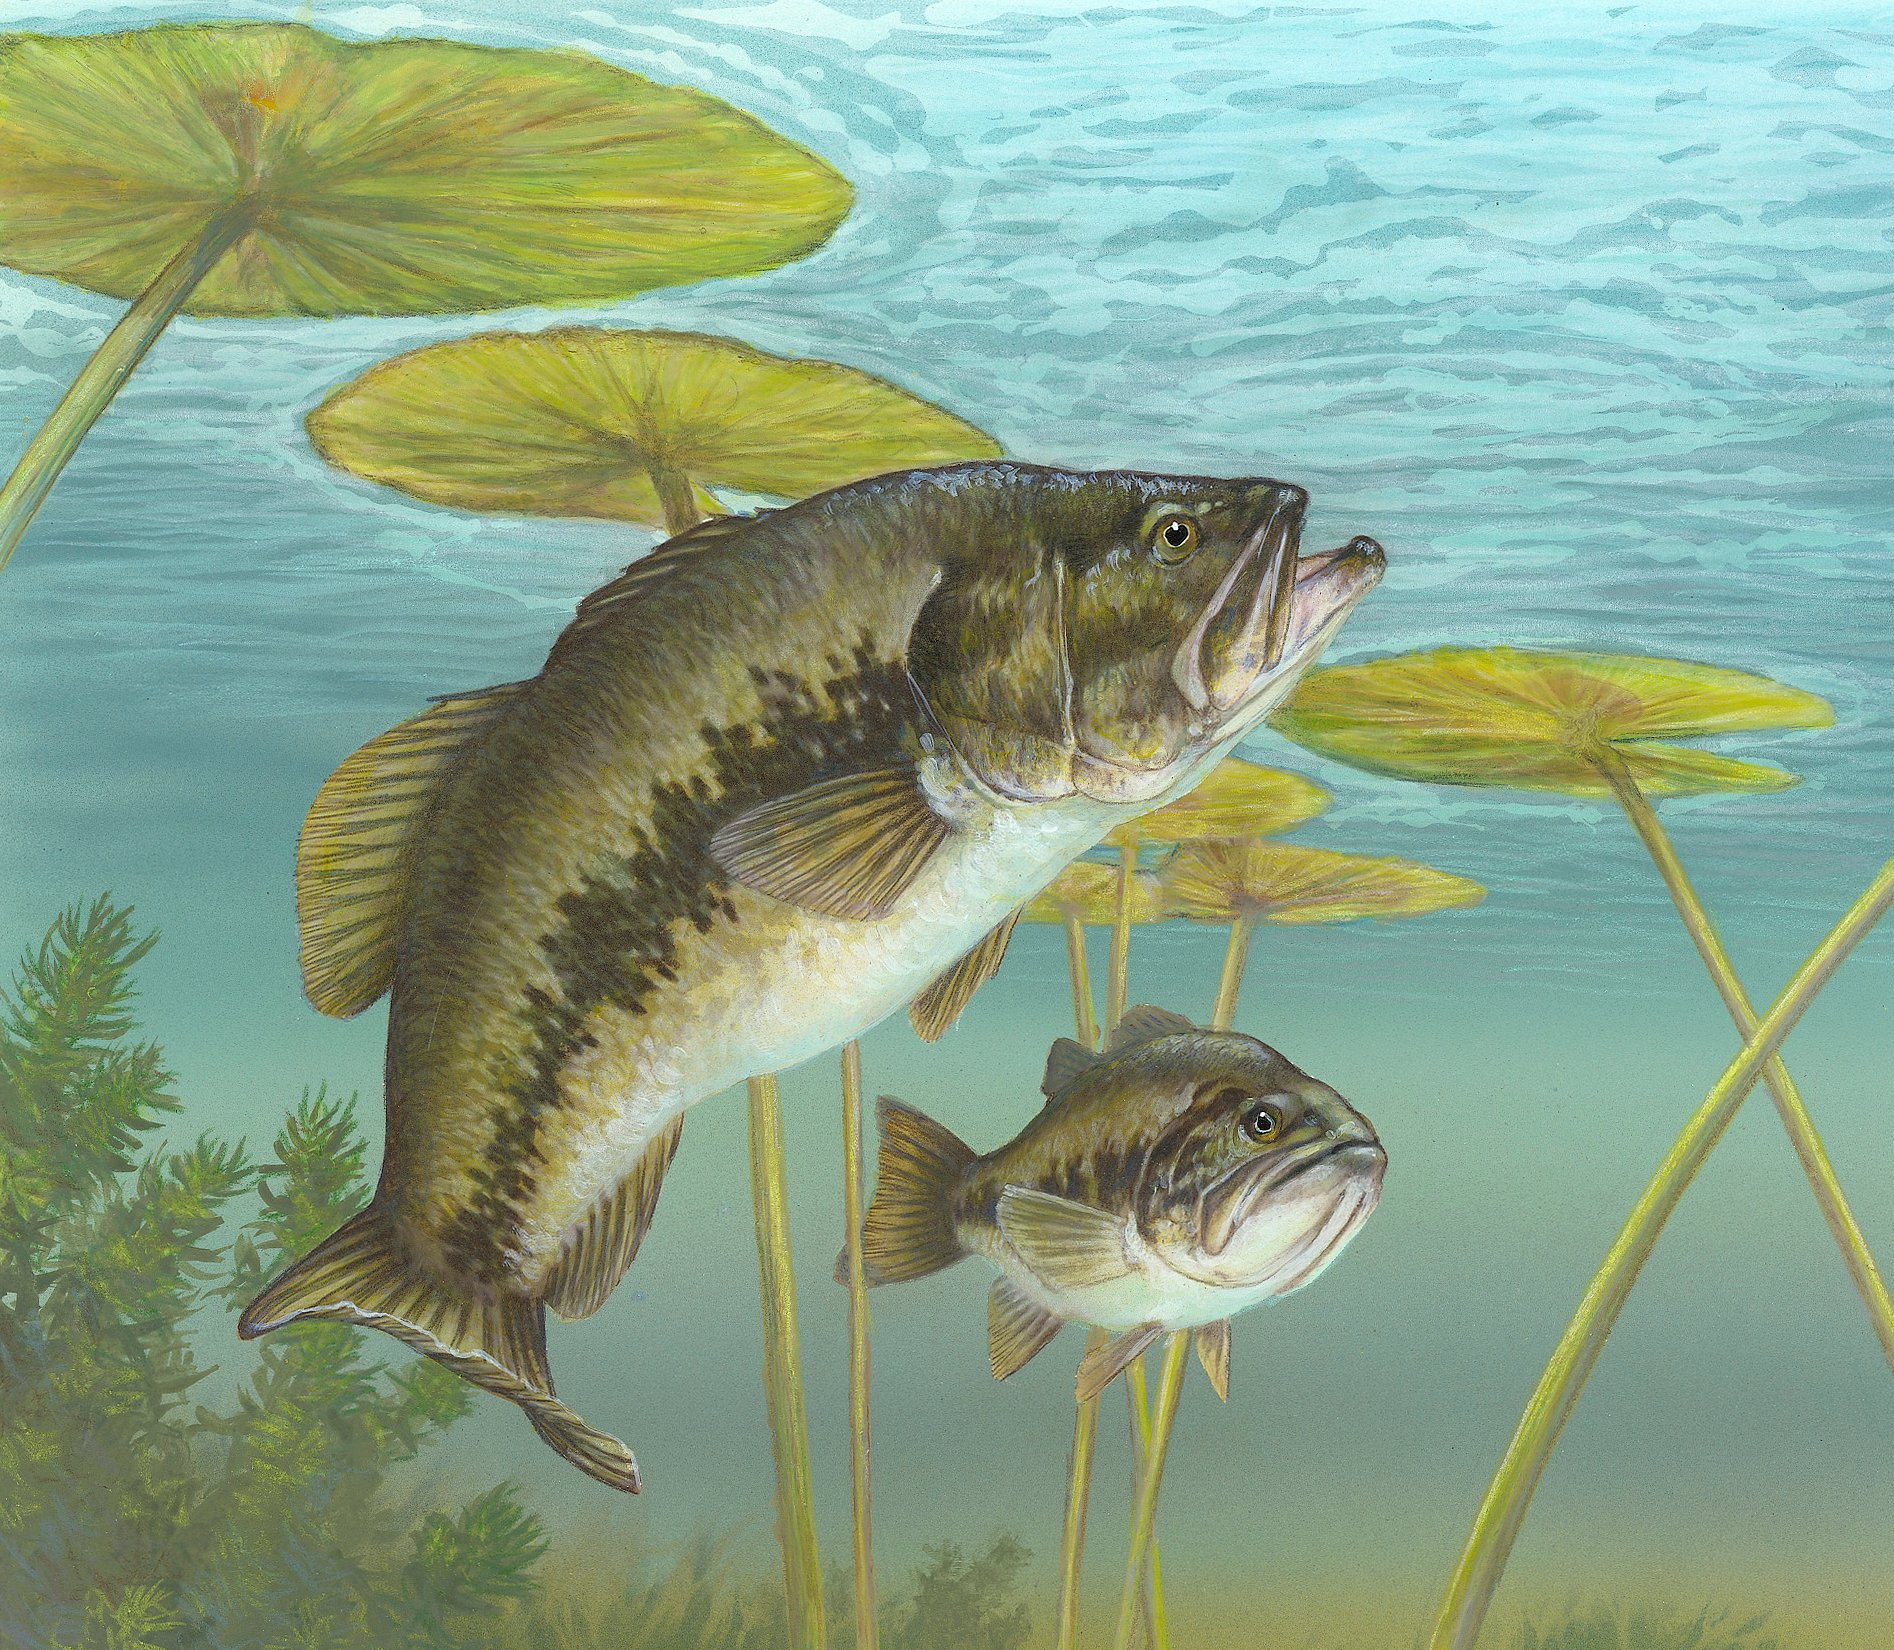 Largemouth Bass Fishing Wallpaper - WallpaperSafari